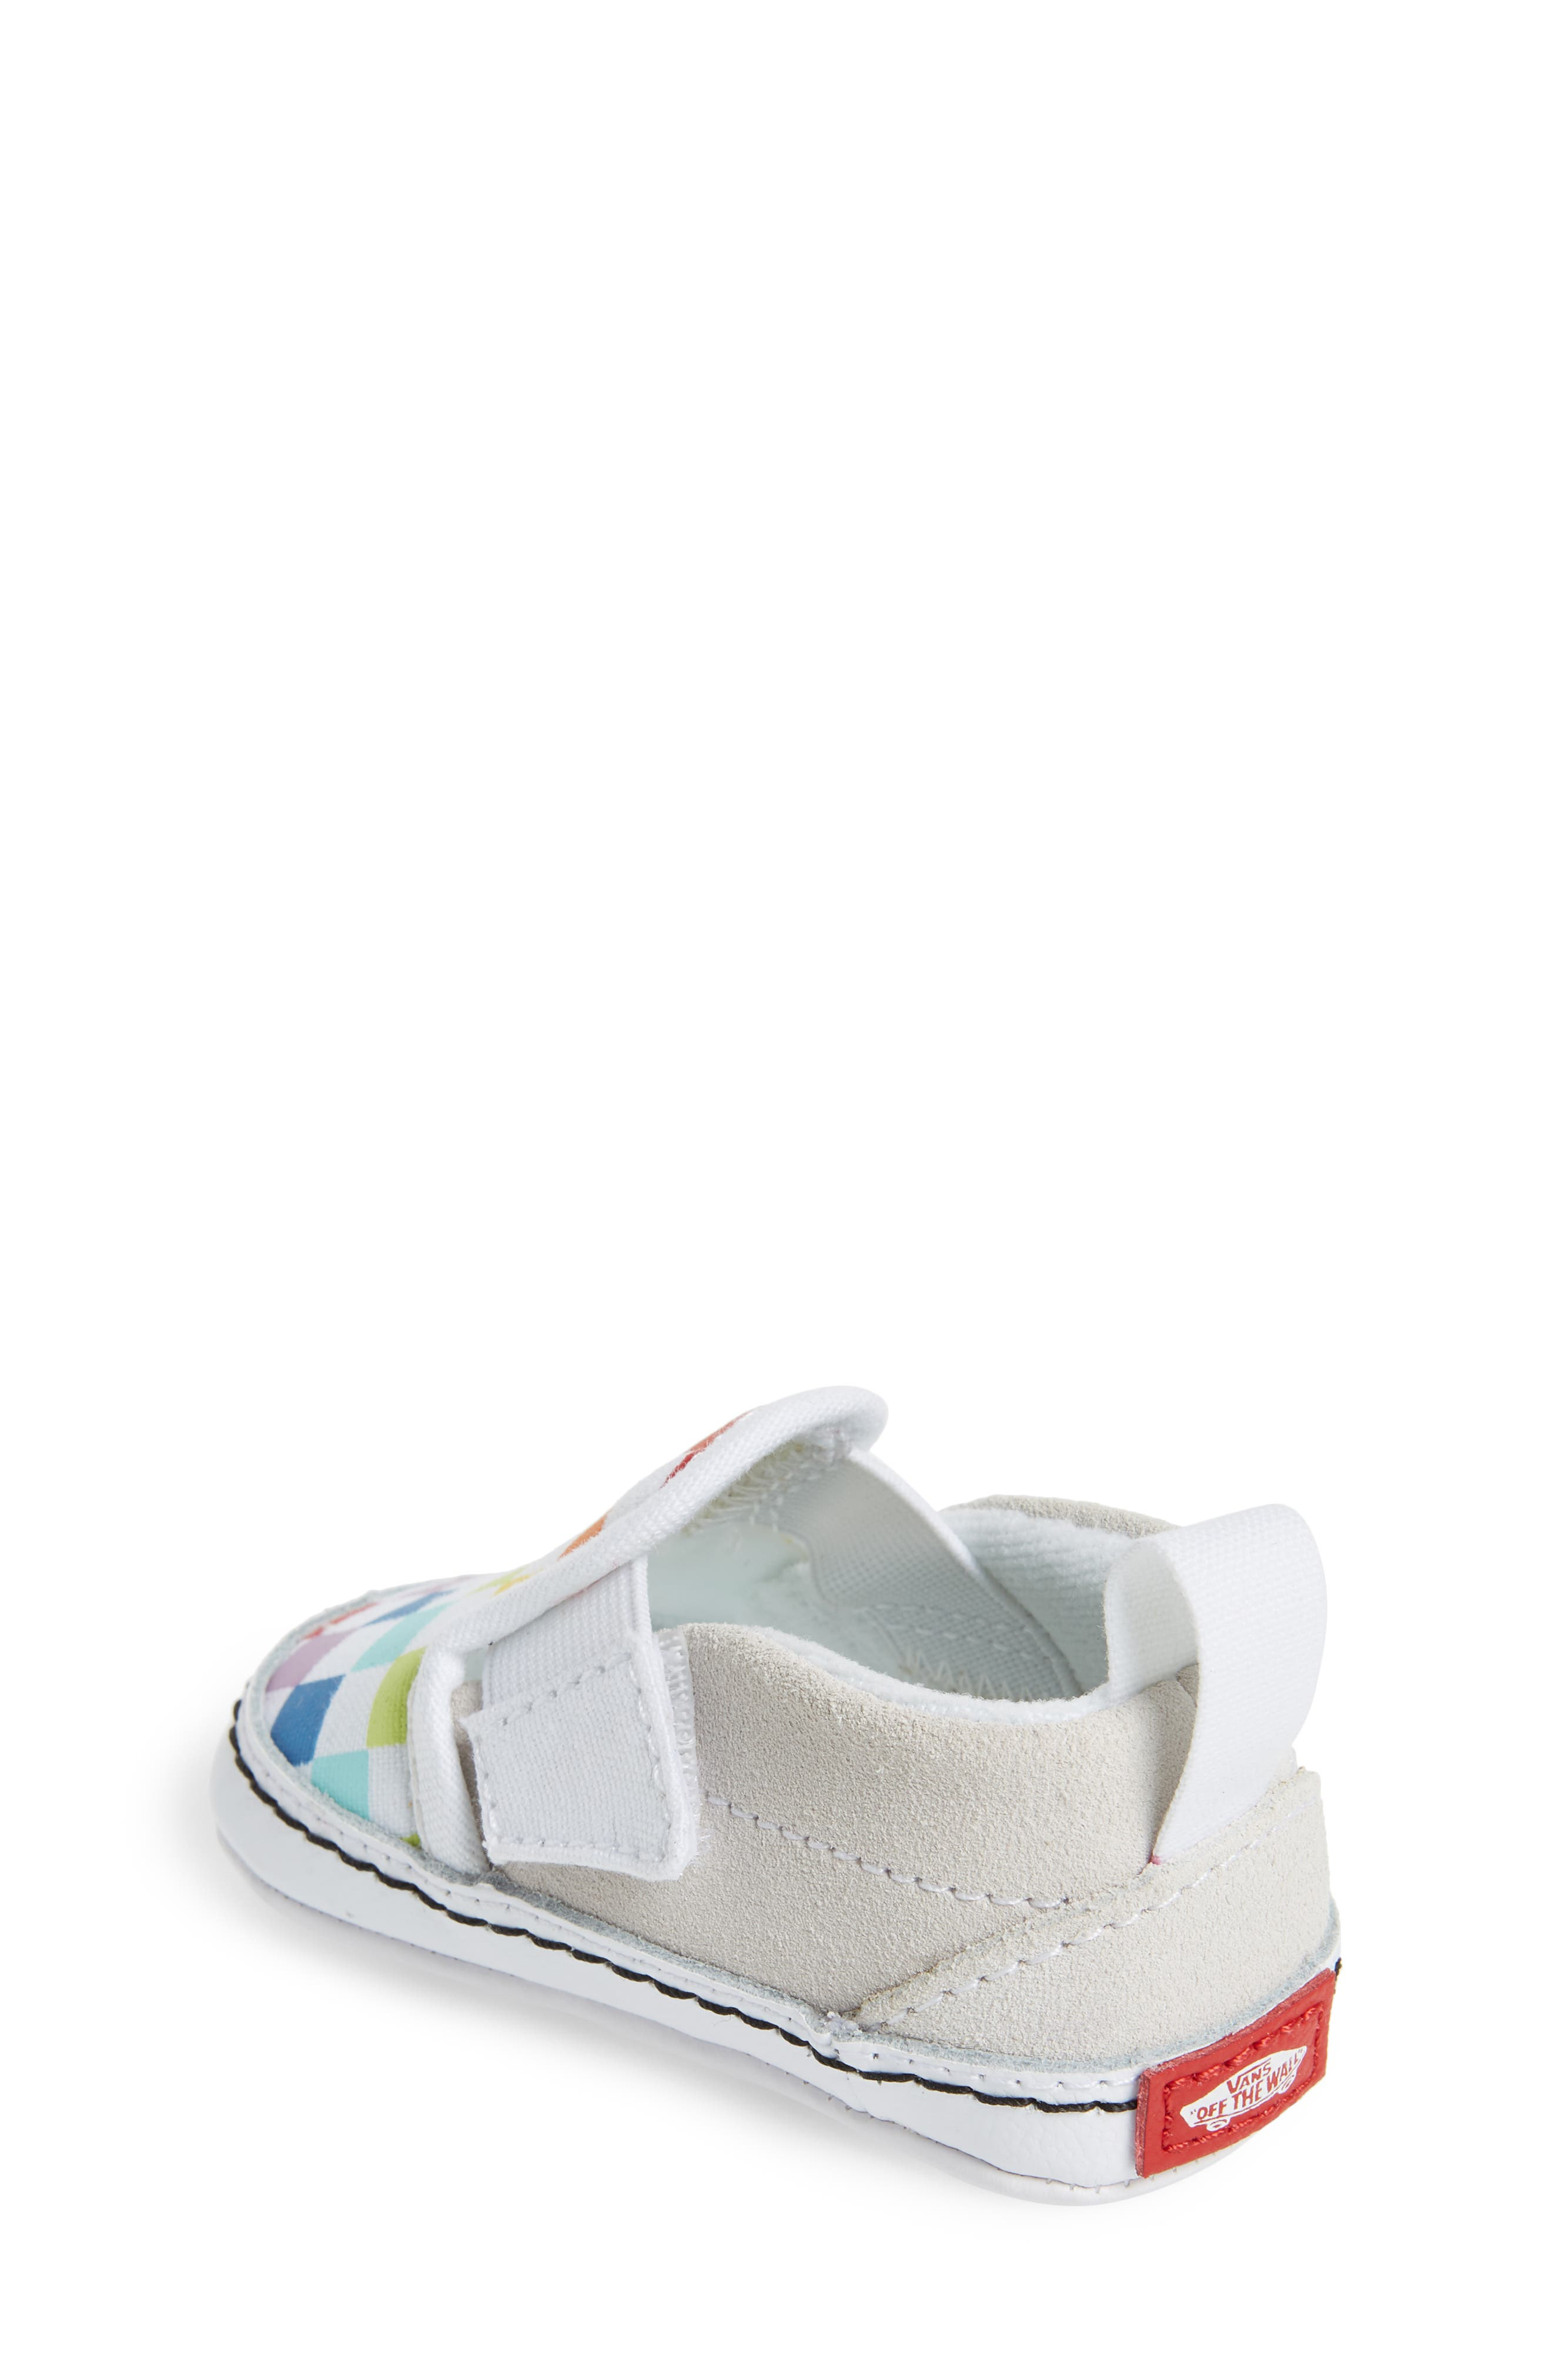 VANS, Slip-On Crib Shoe, Alternate thumbnail 2, color, CHECKERBOARD RAINBOW/ WHITE